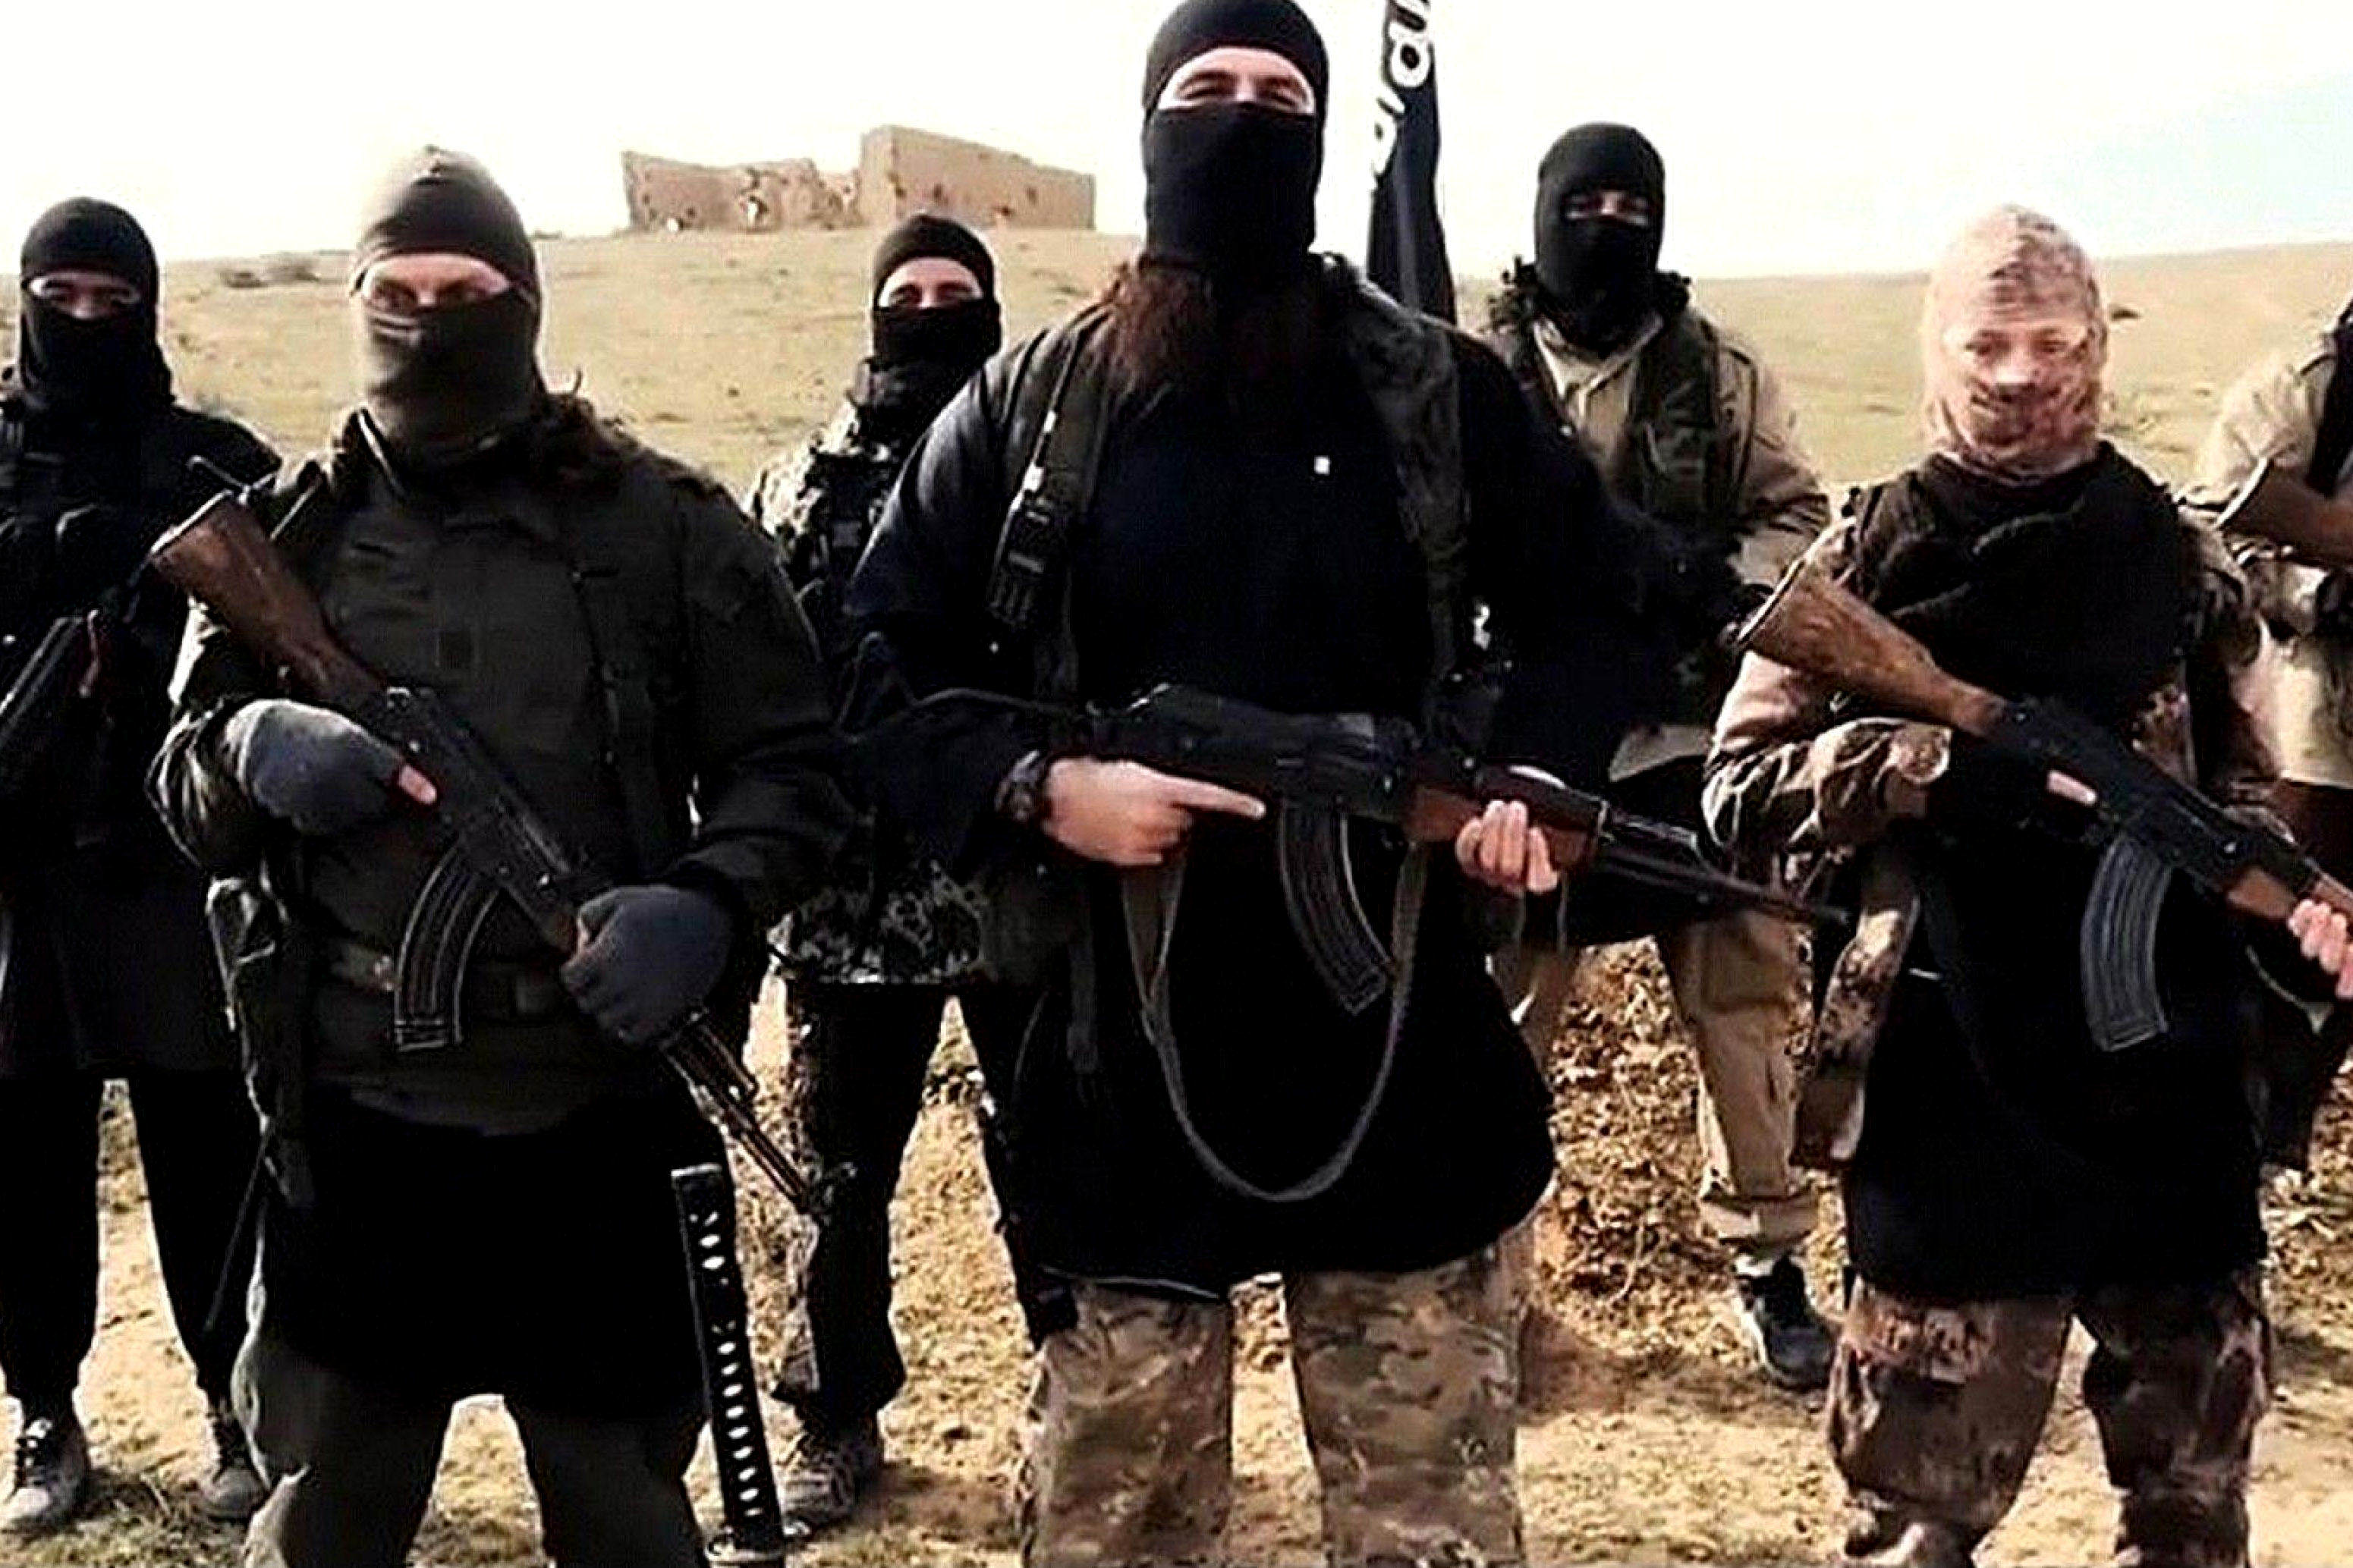 Jihadis Growing Use of Cryptocurrencies Is the looming Threat – Report